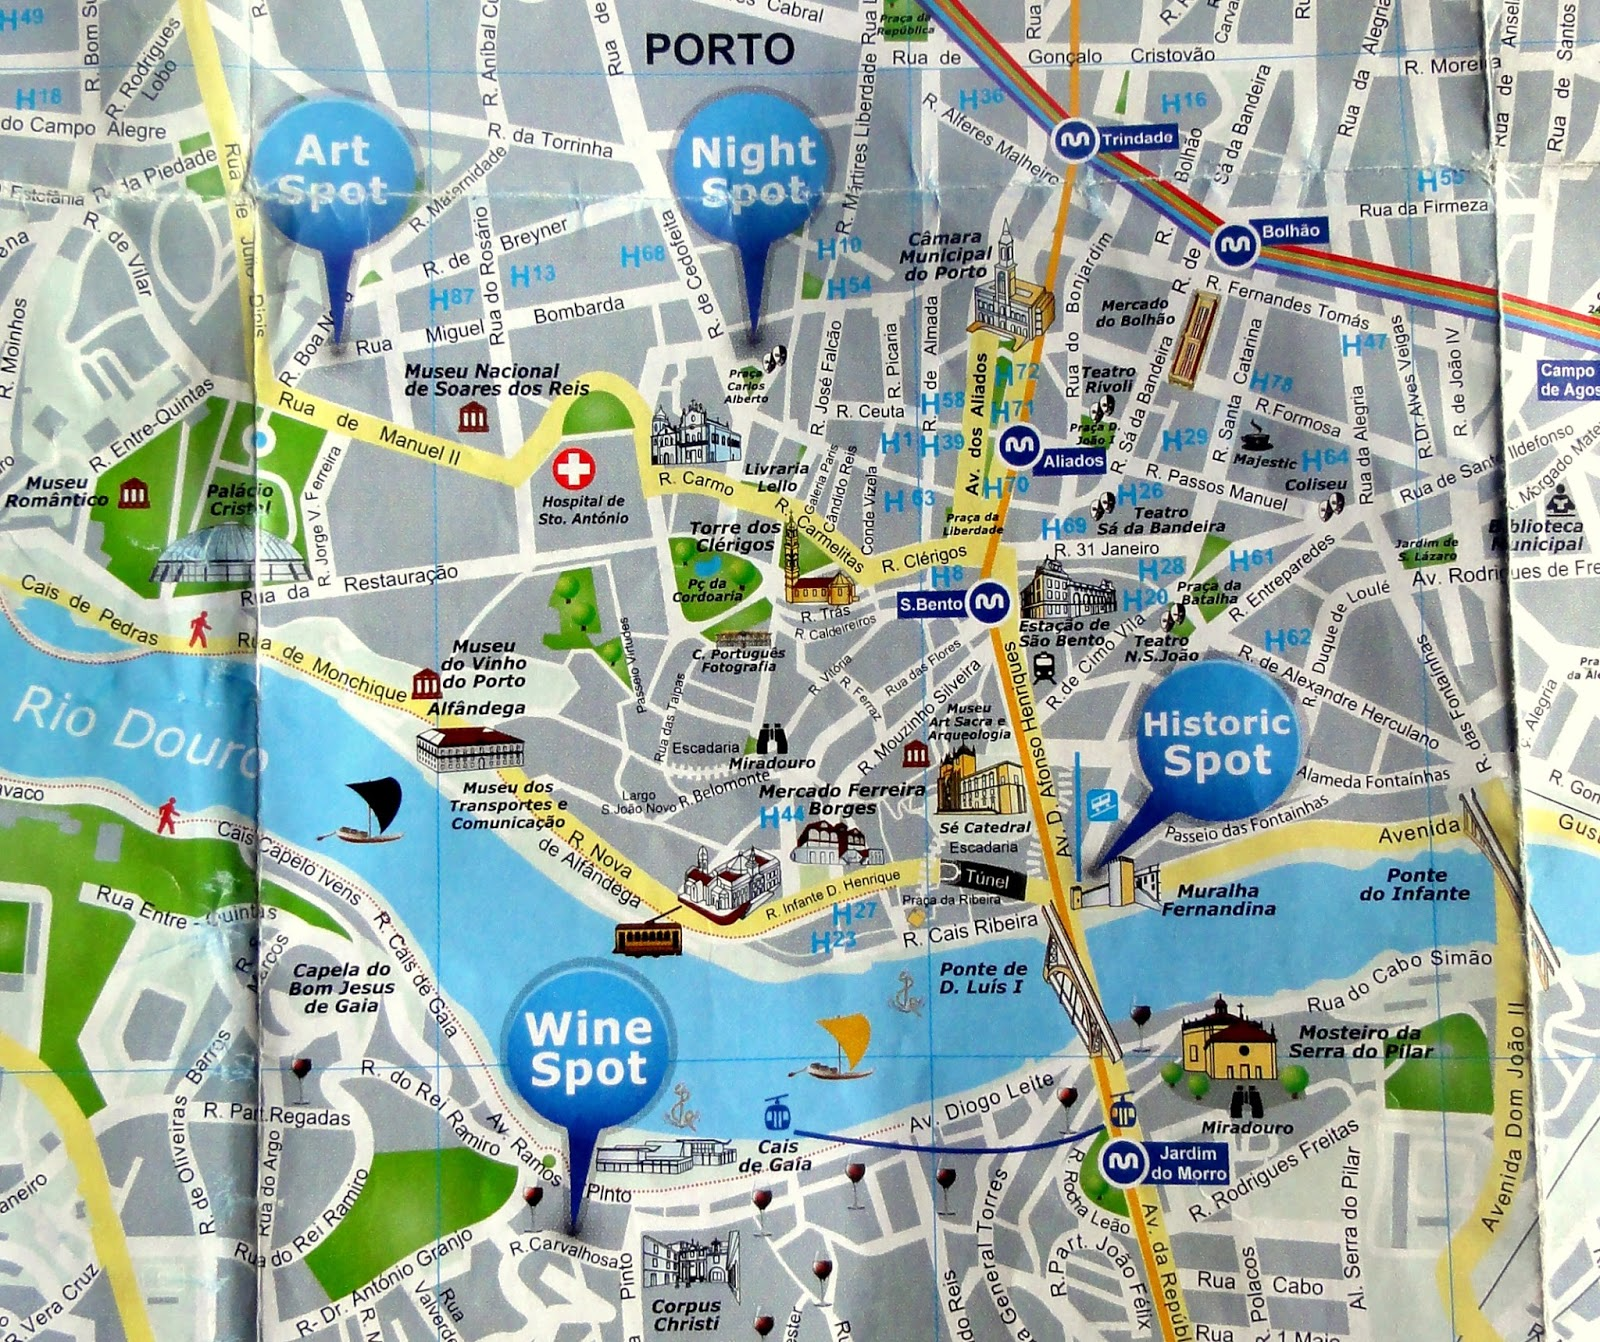 Walking Discoveries and Map of Porto Centre | Travel and Lifestyle ...